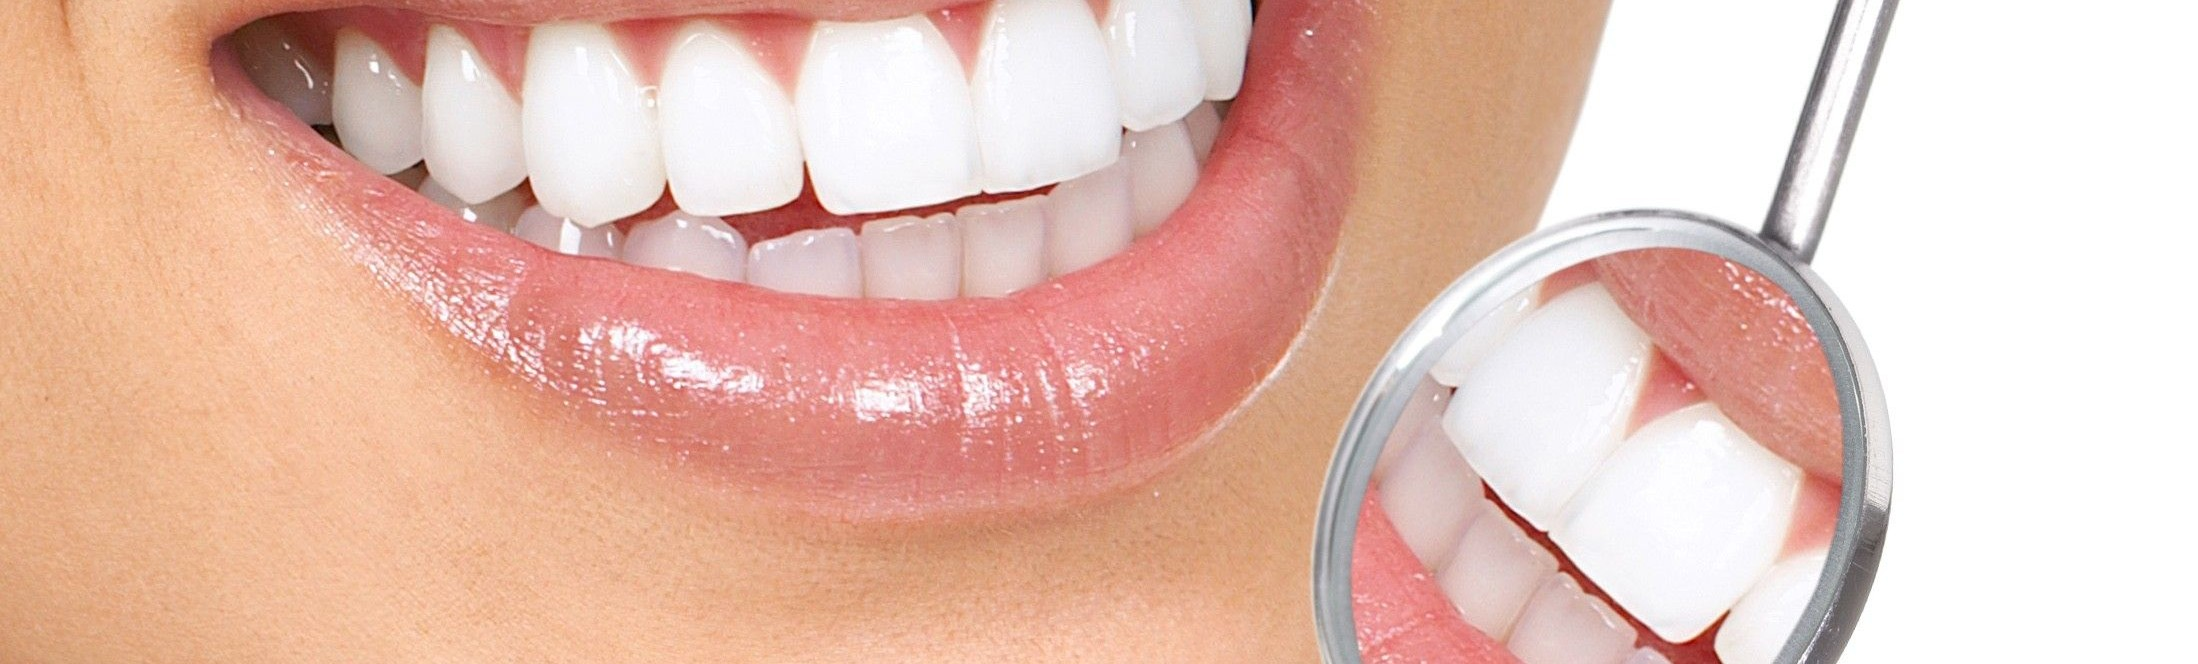 Extraction Of Wisdom Tooth by Expert Dentists Is A Better Choice